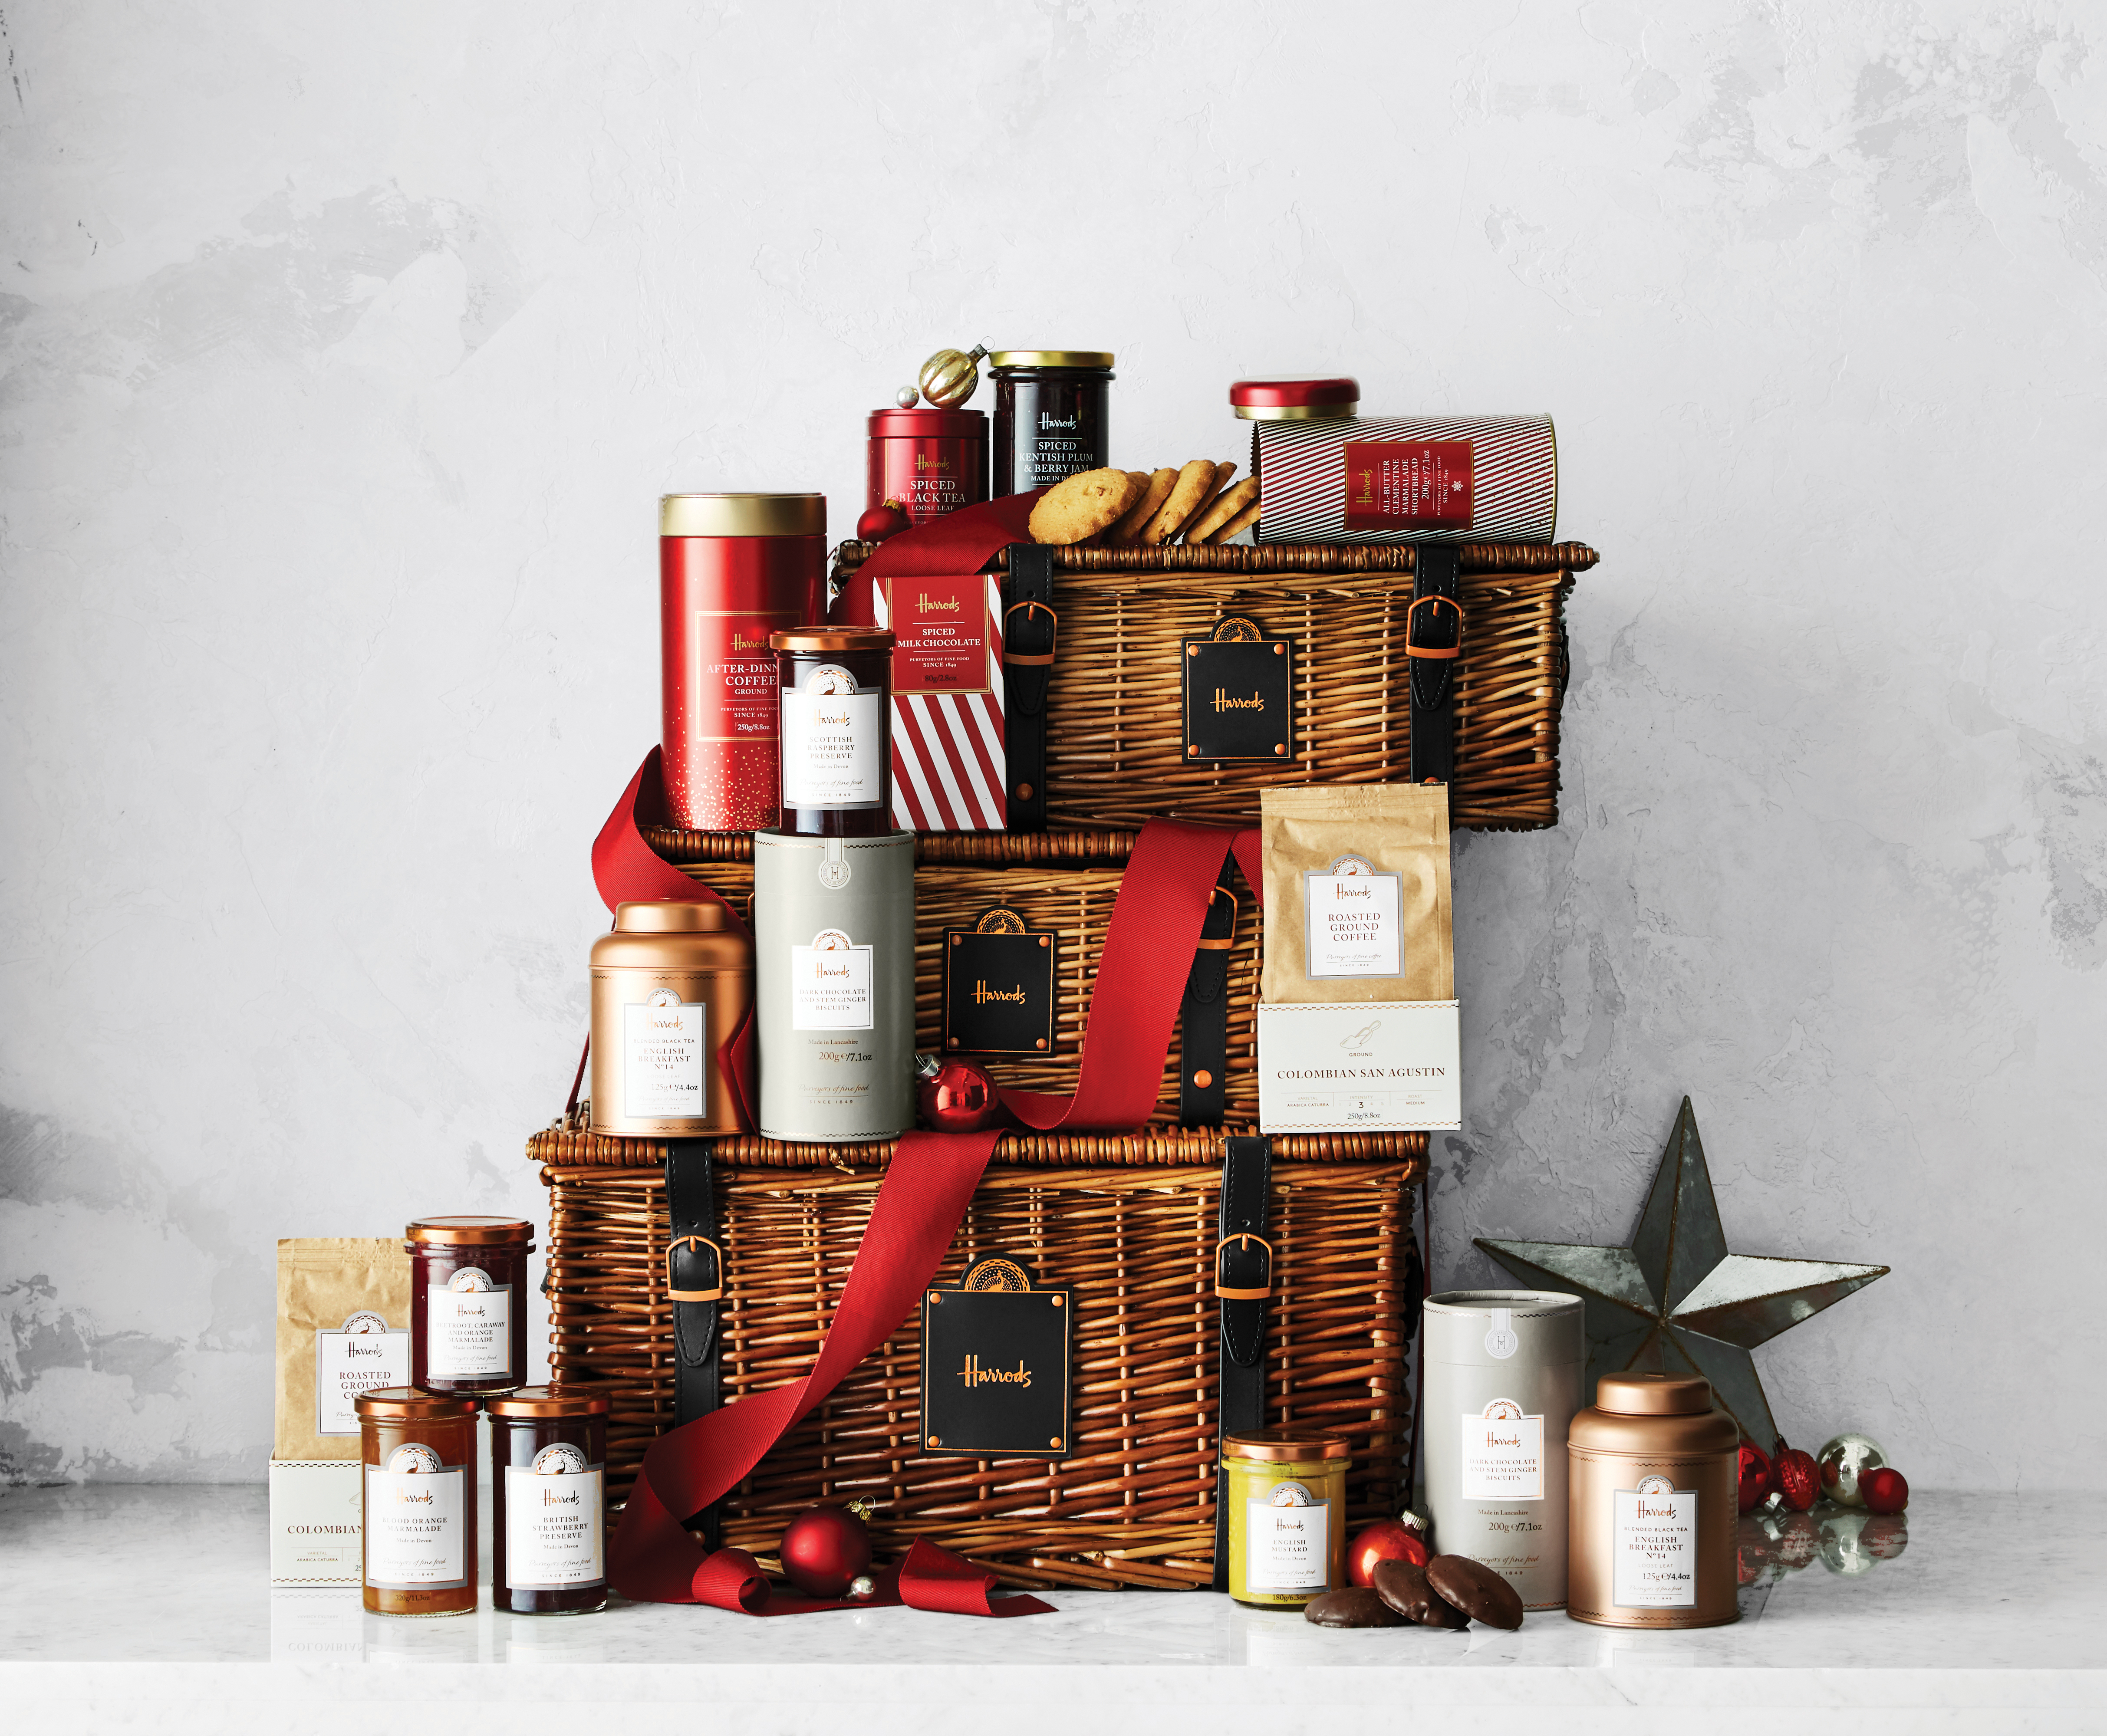 HARRODS PARTNERS WITH WILLIAMS SONOMA TO LAUNCH EXCLUSIVE COLLECTION AVAILABLE IN THE U.S. | Business Wire